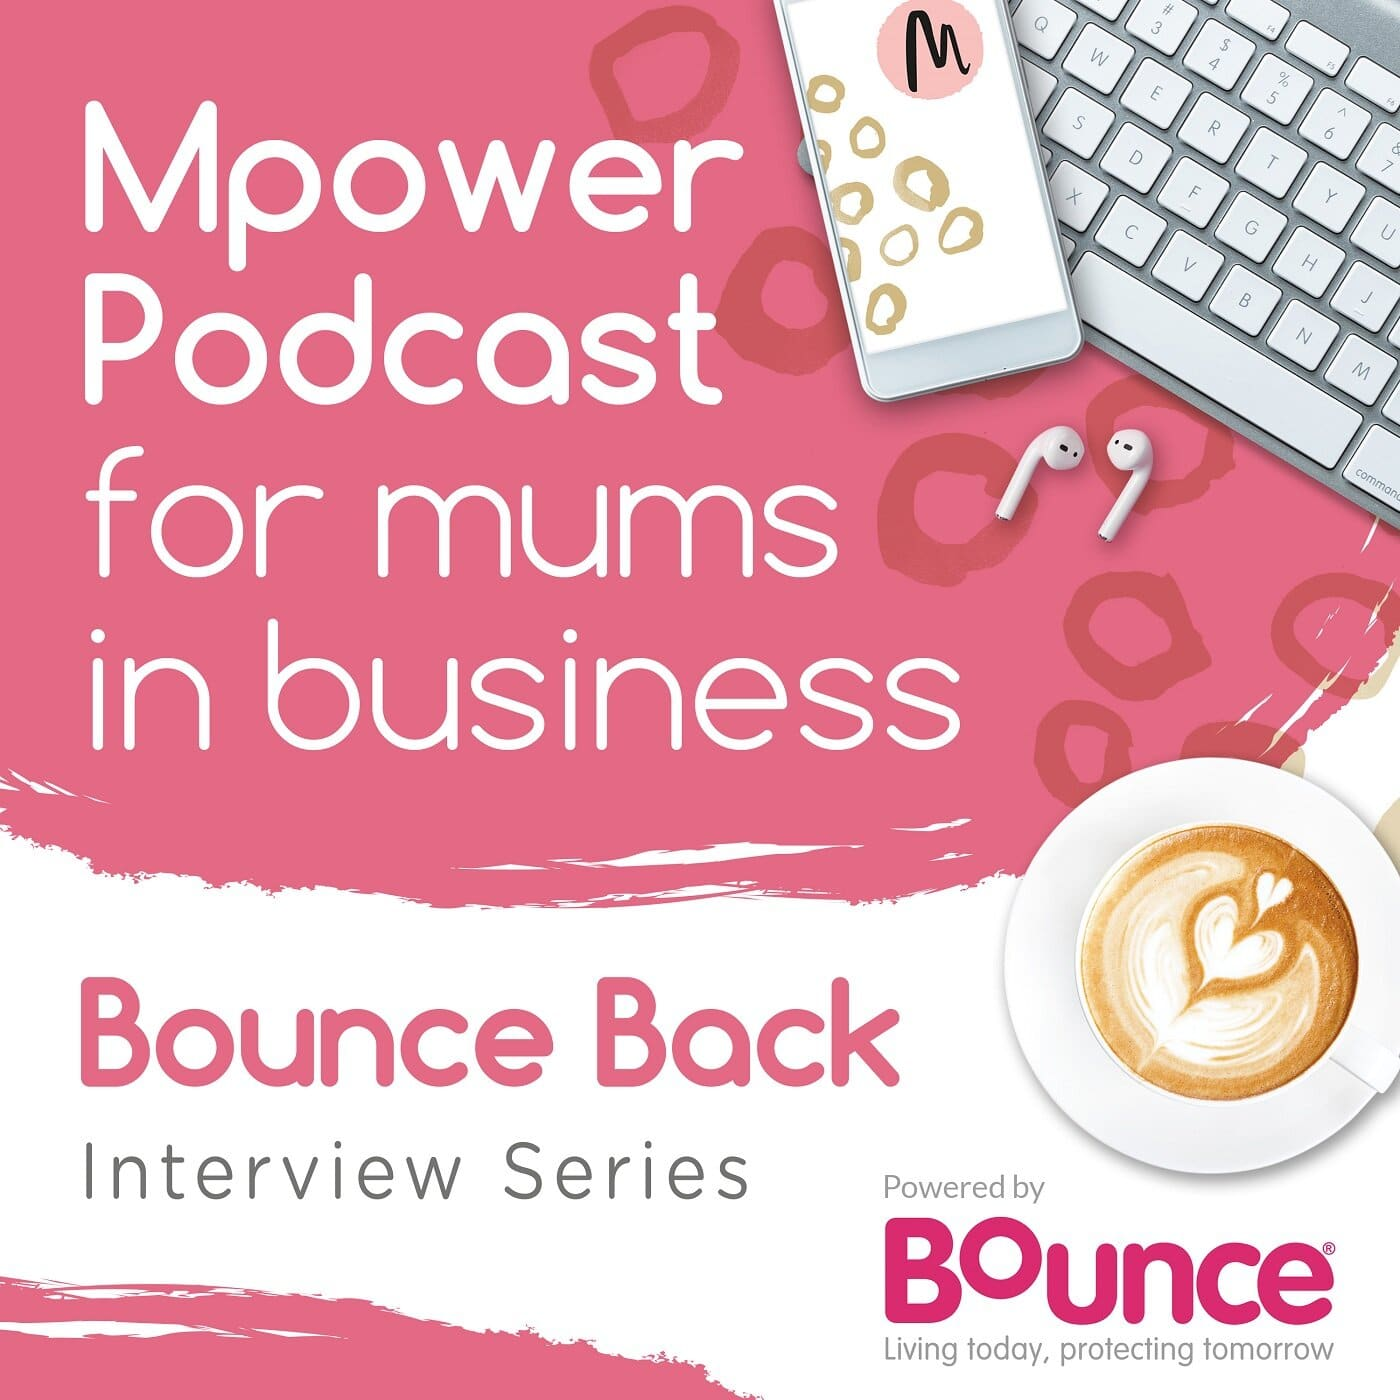 Artwork for podcast Mpower Podcast for mums in business